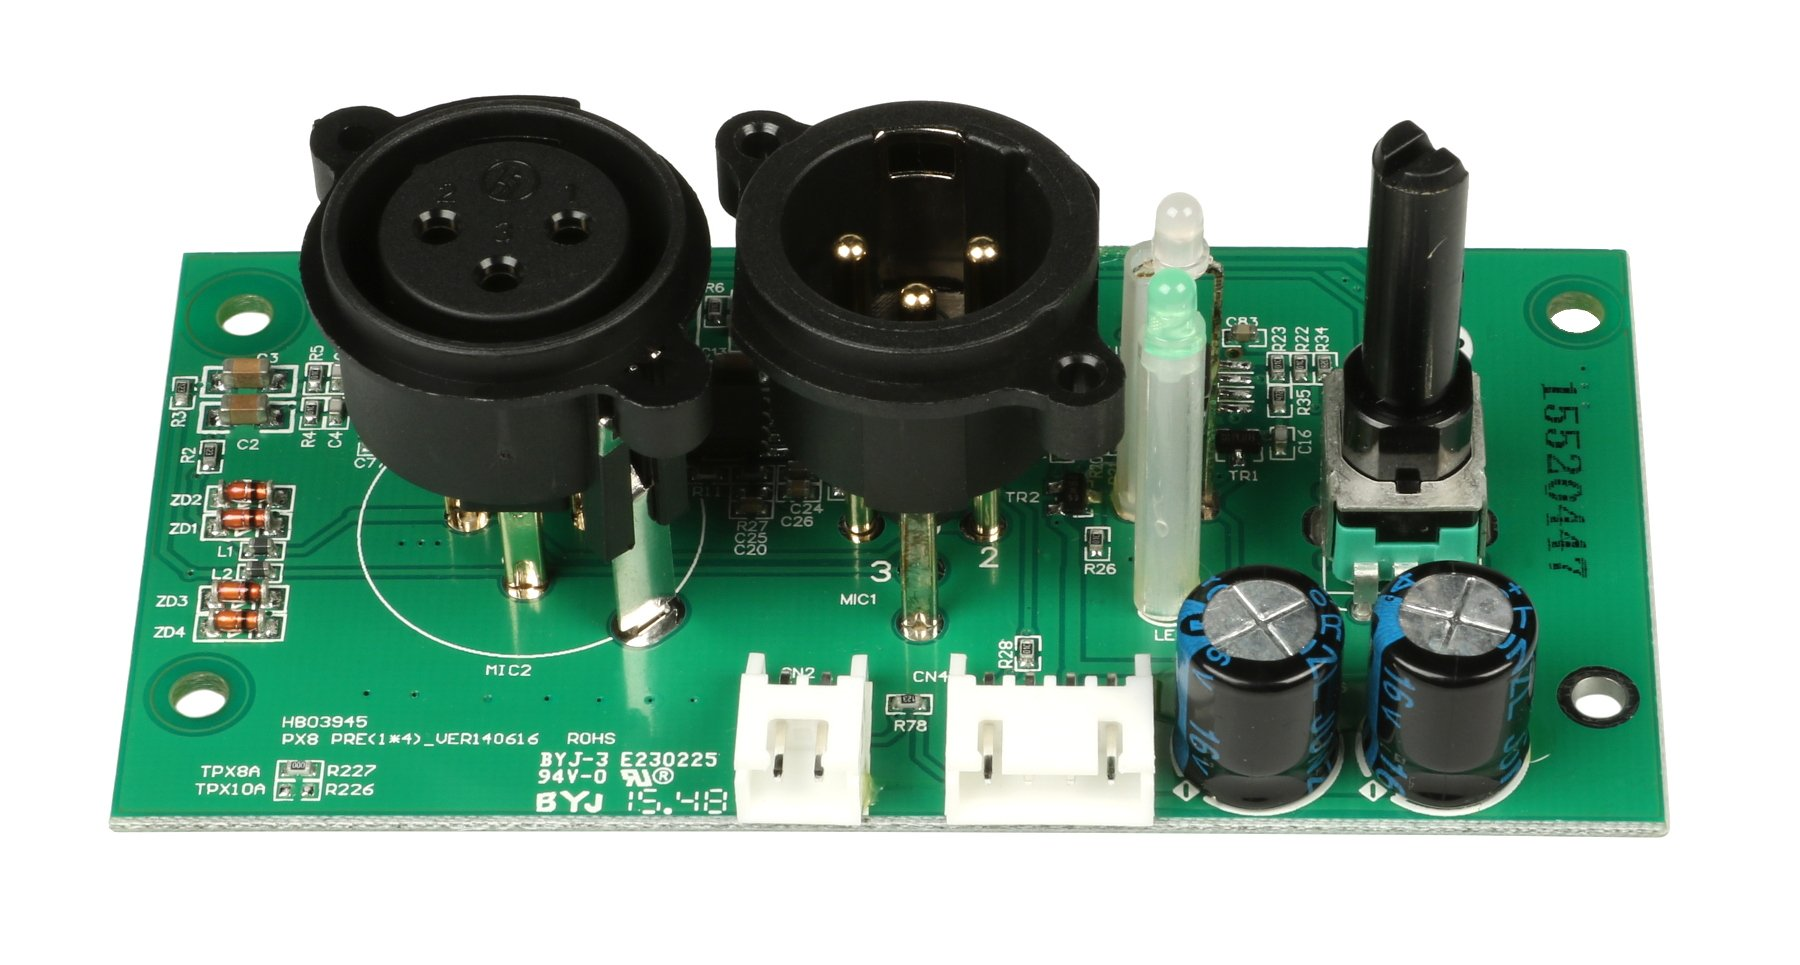 XLR Preamp PCB Assembly for TX8